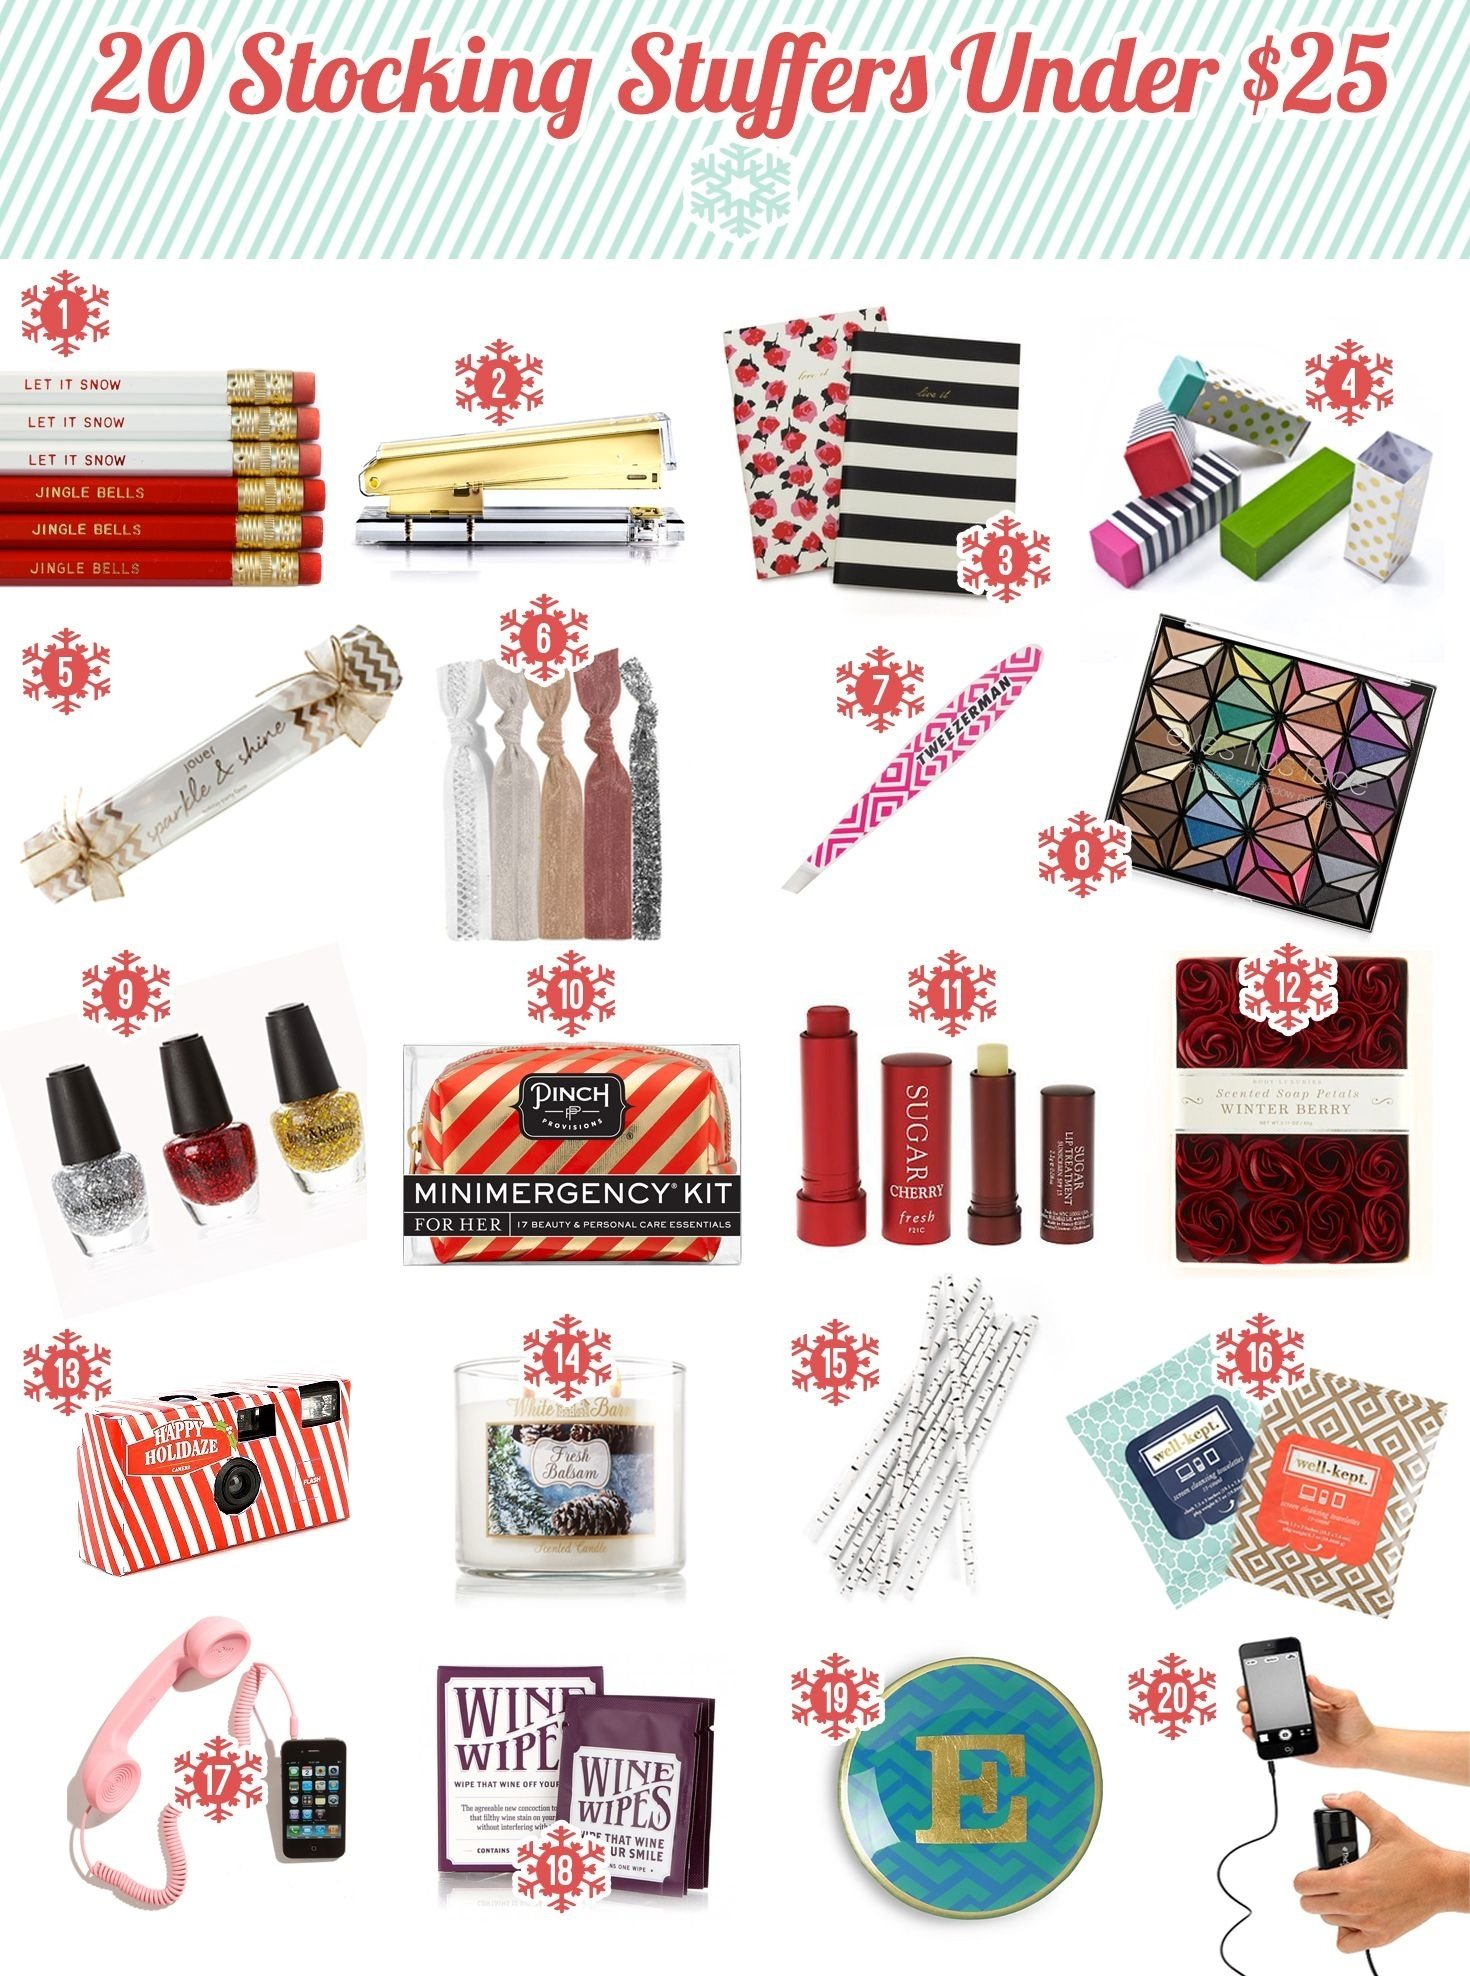 10 Great 2013 Gift Ideas For Women 2013 holiday gift guide secret santa gift ideas under 25 most are 9 2020